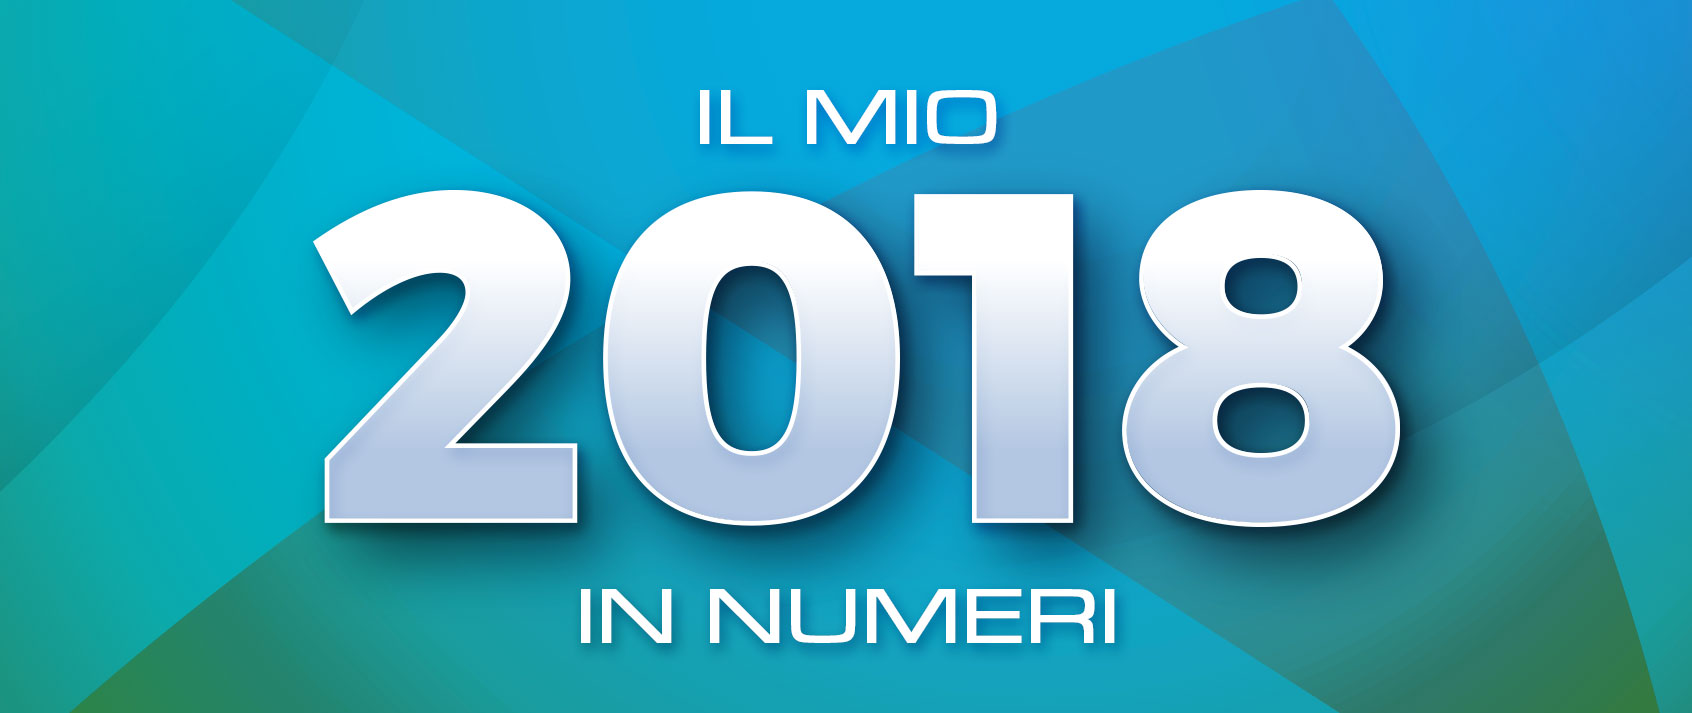 MY 2018 IN NUMBERS – BY TIBERIO FAORO